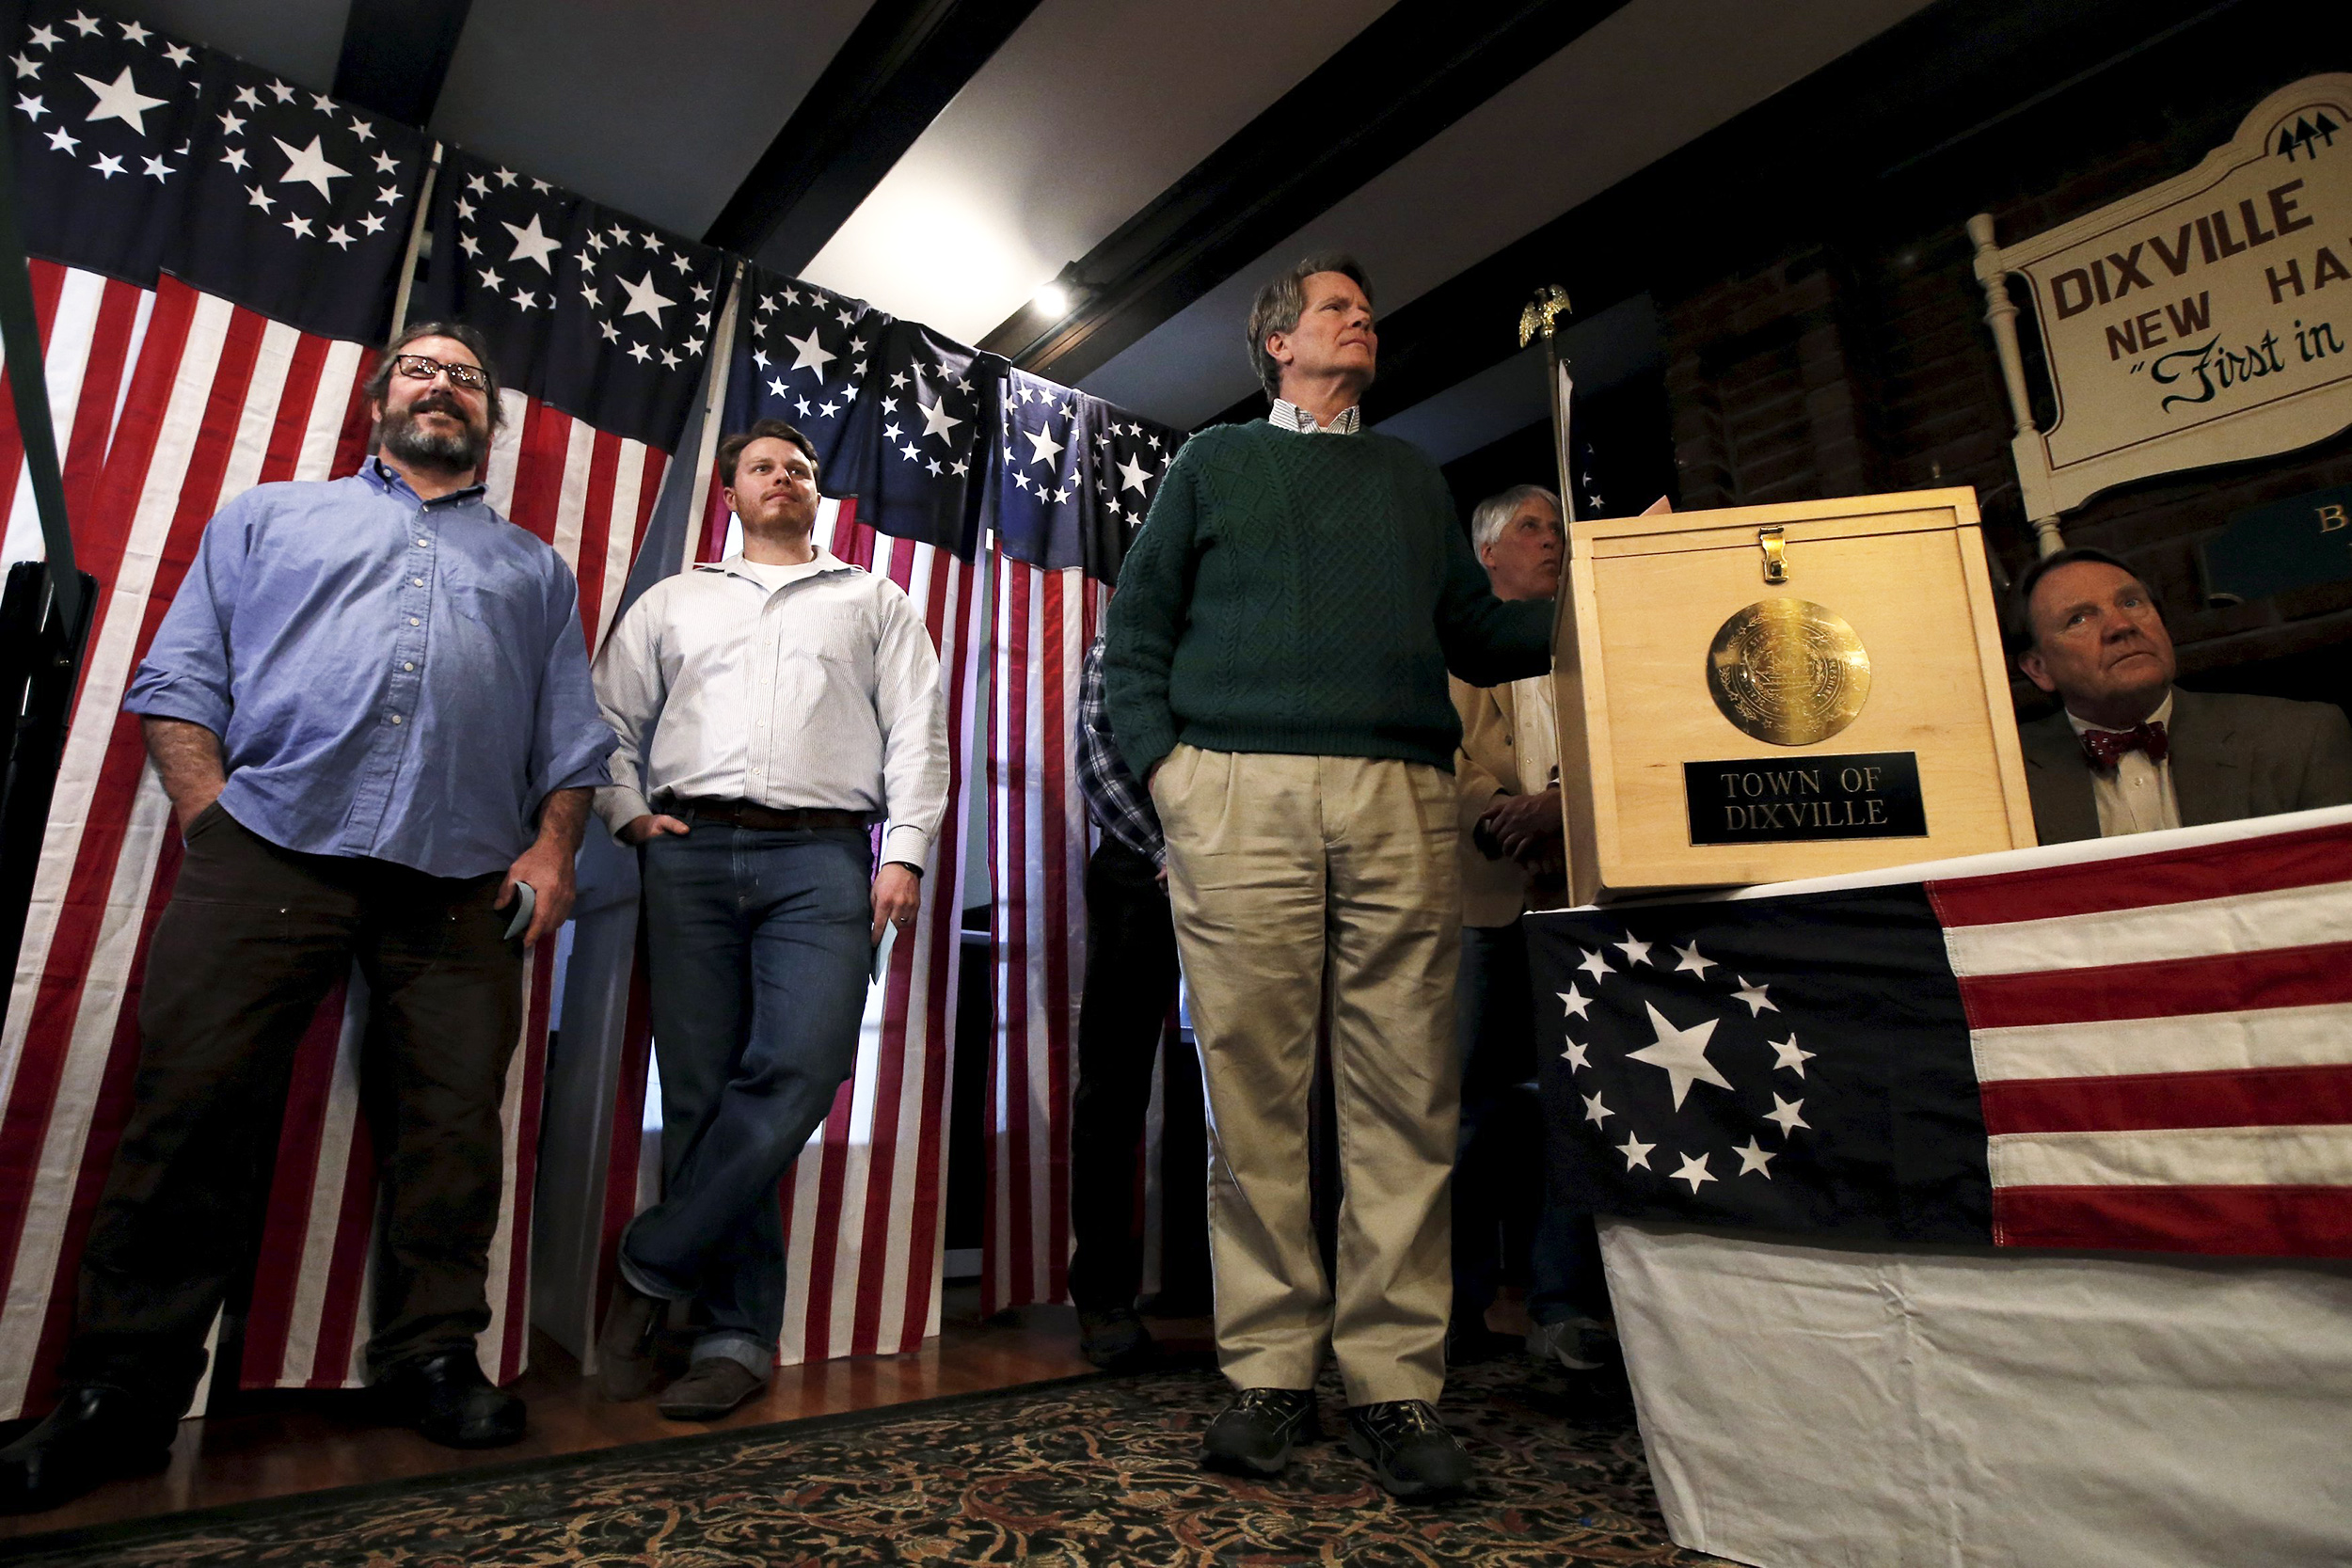 Jeff Stevens and other voters wait for the last few seconds to midnight to cast their votes in the U.S. Presidential primary election at the Hale House at Balsams Hotel in Dixville Notch, NH on Feb. 8, 2016.